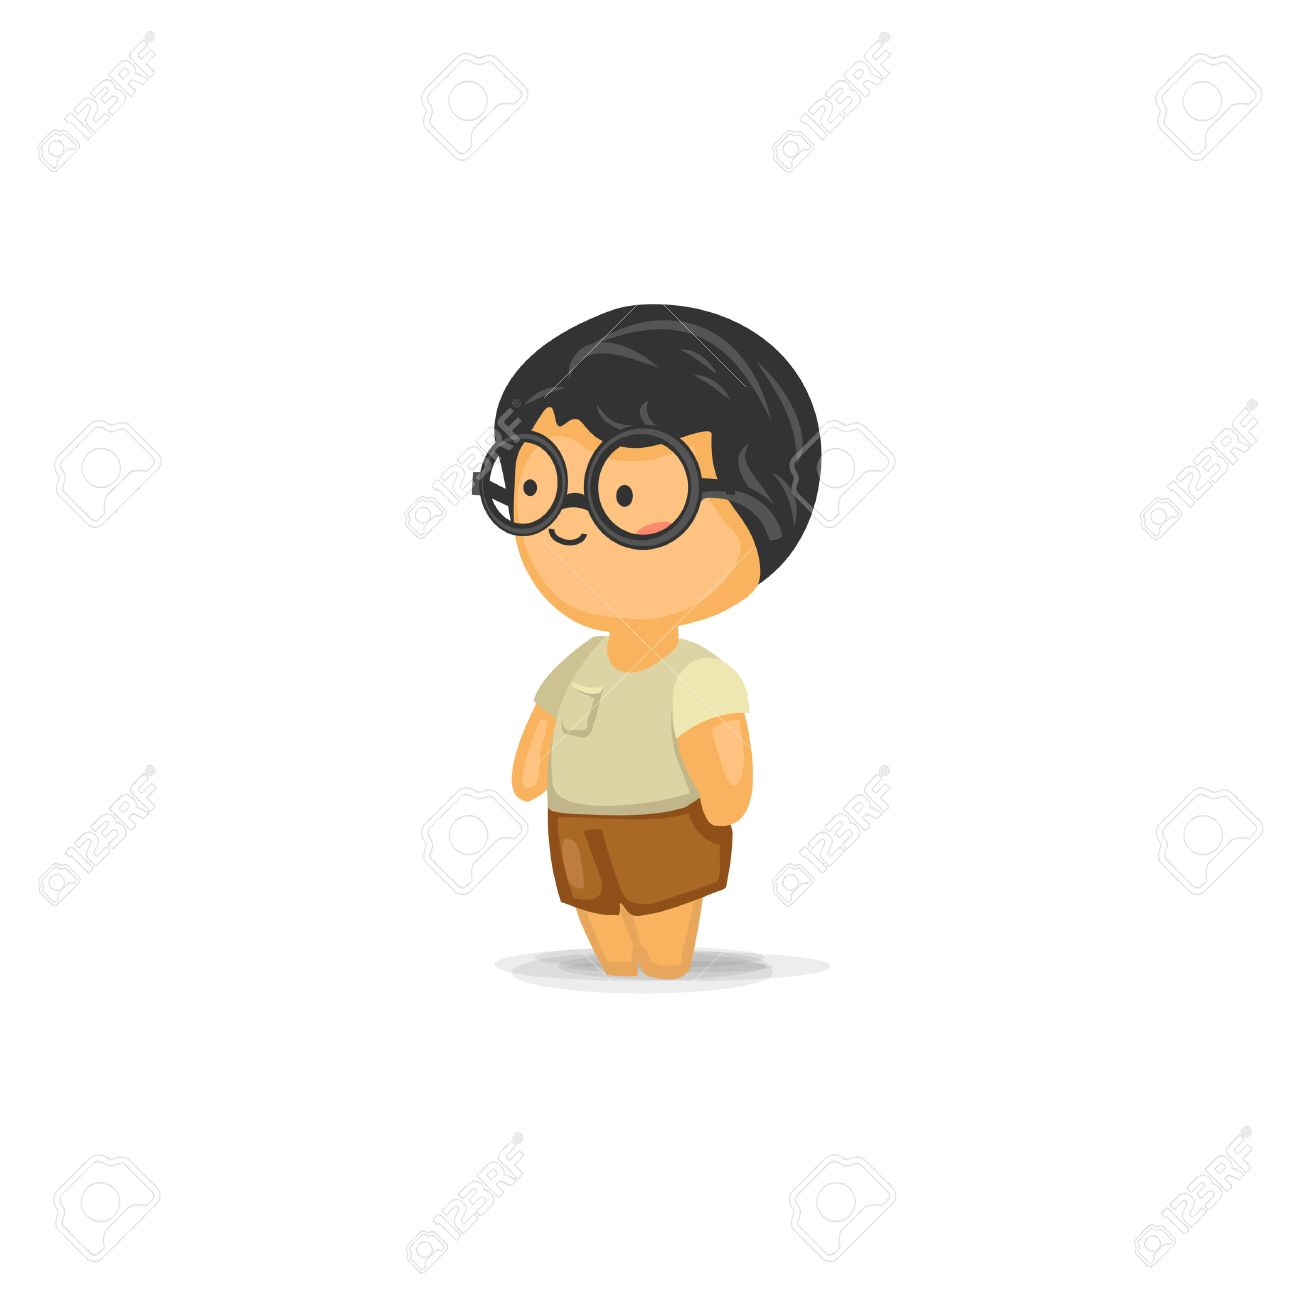 cute chibi boy with glasses royalty free cliparts vectors and